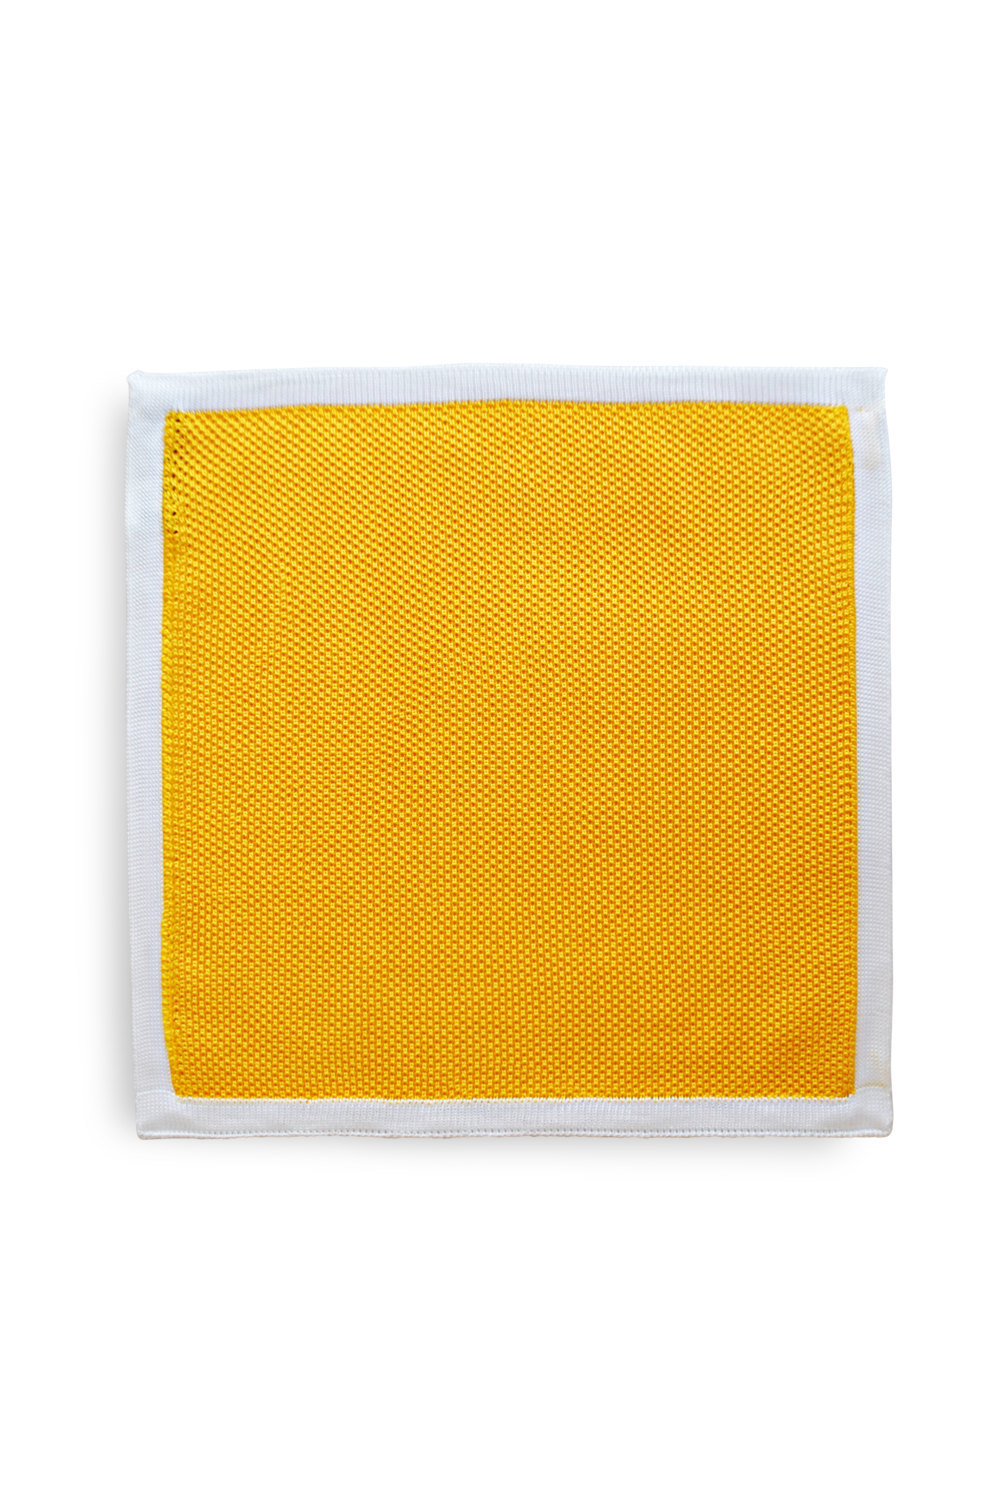 Frederick Thomas knitted Yellow pocket square with White Edging FT3180